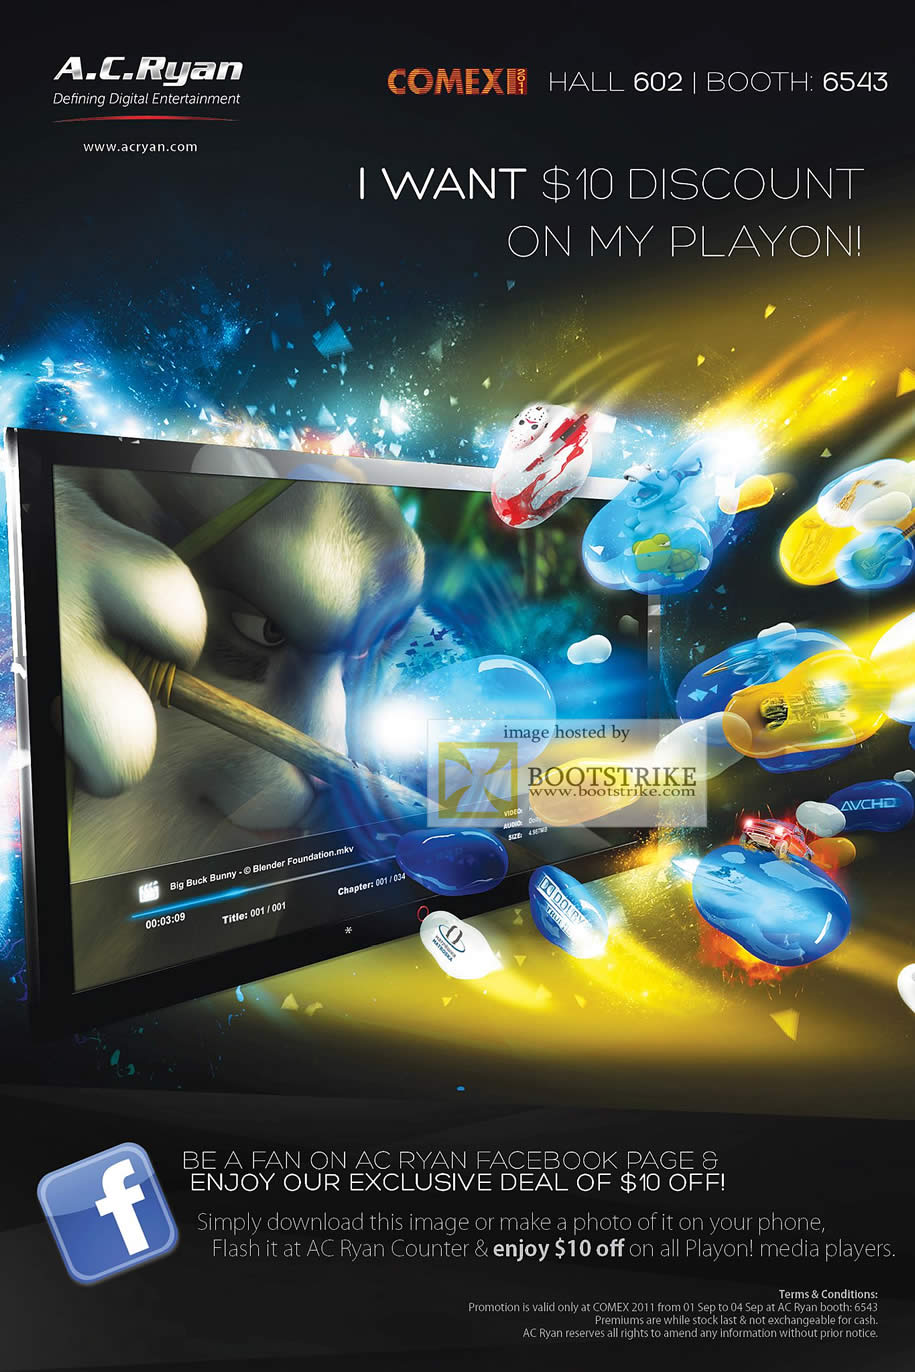 COMEX 2011 price list image brochure of AC Ryan PlayOn 10 Dollar Discount Media Player